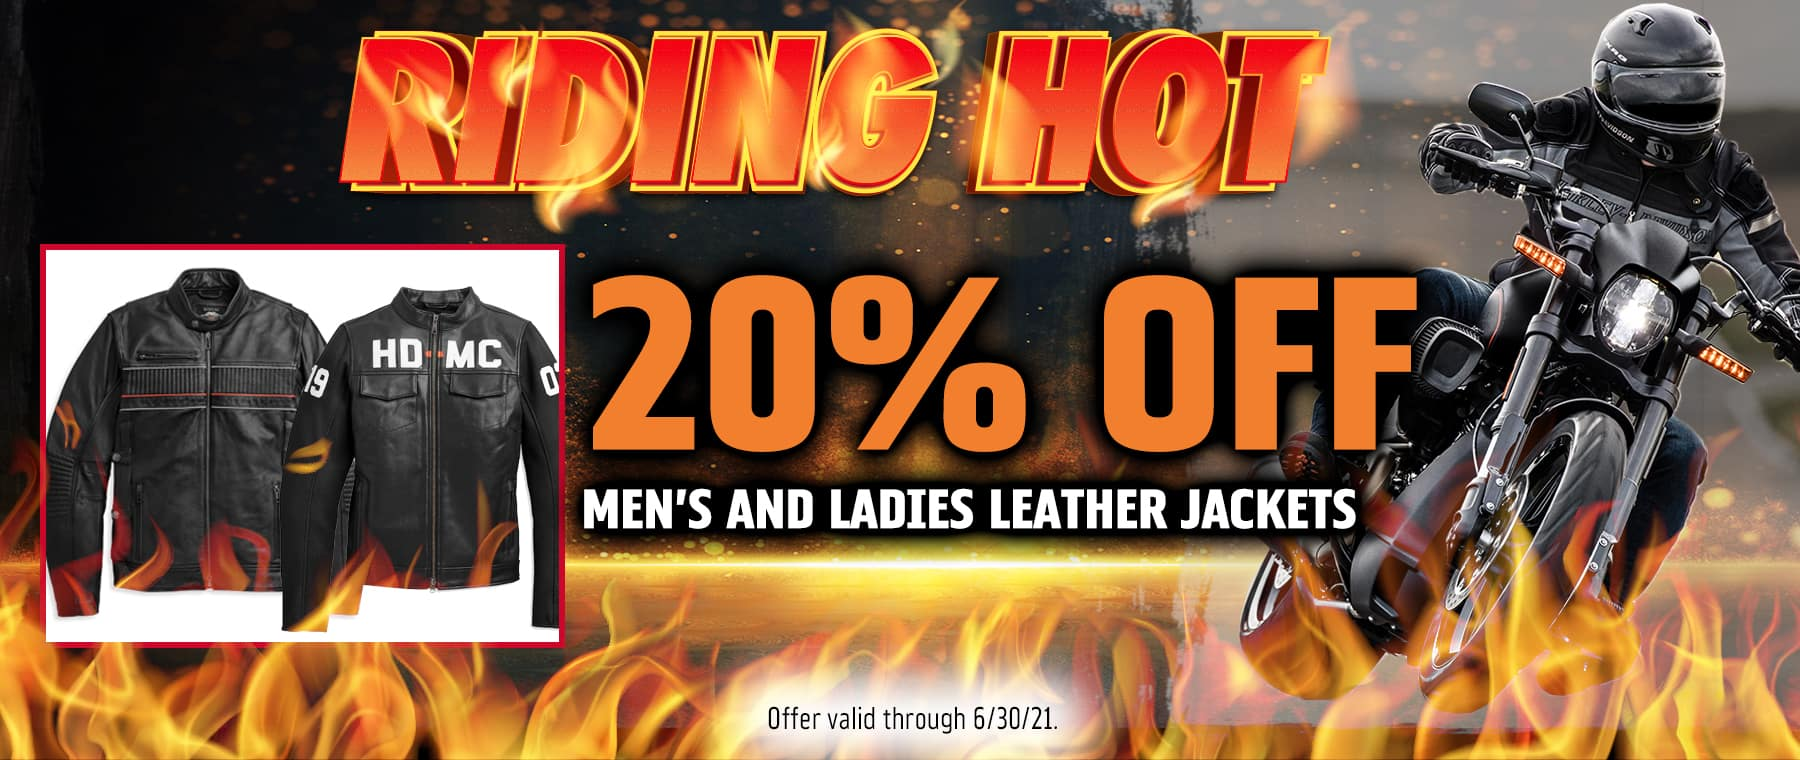 20% OFF MENS AND LADIES LEATHER JACKETS